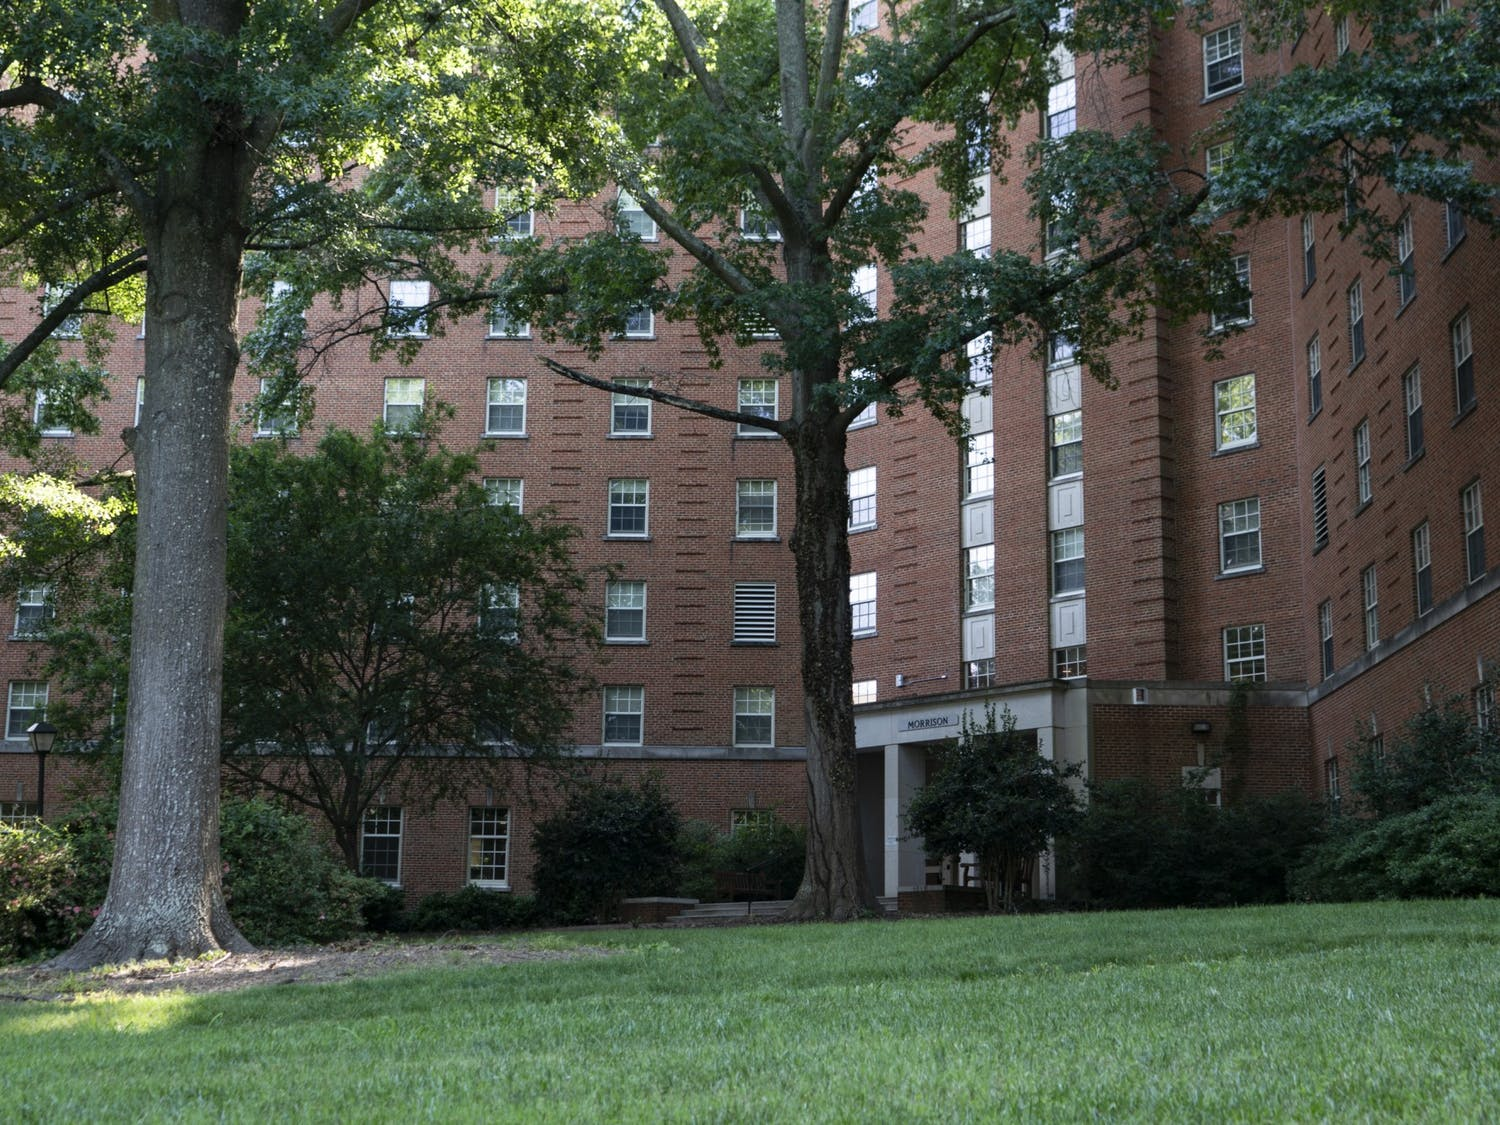 Morrison Residence Hall as pictured on Sunday, June 6, 2020.